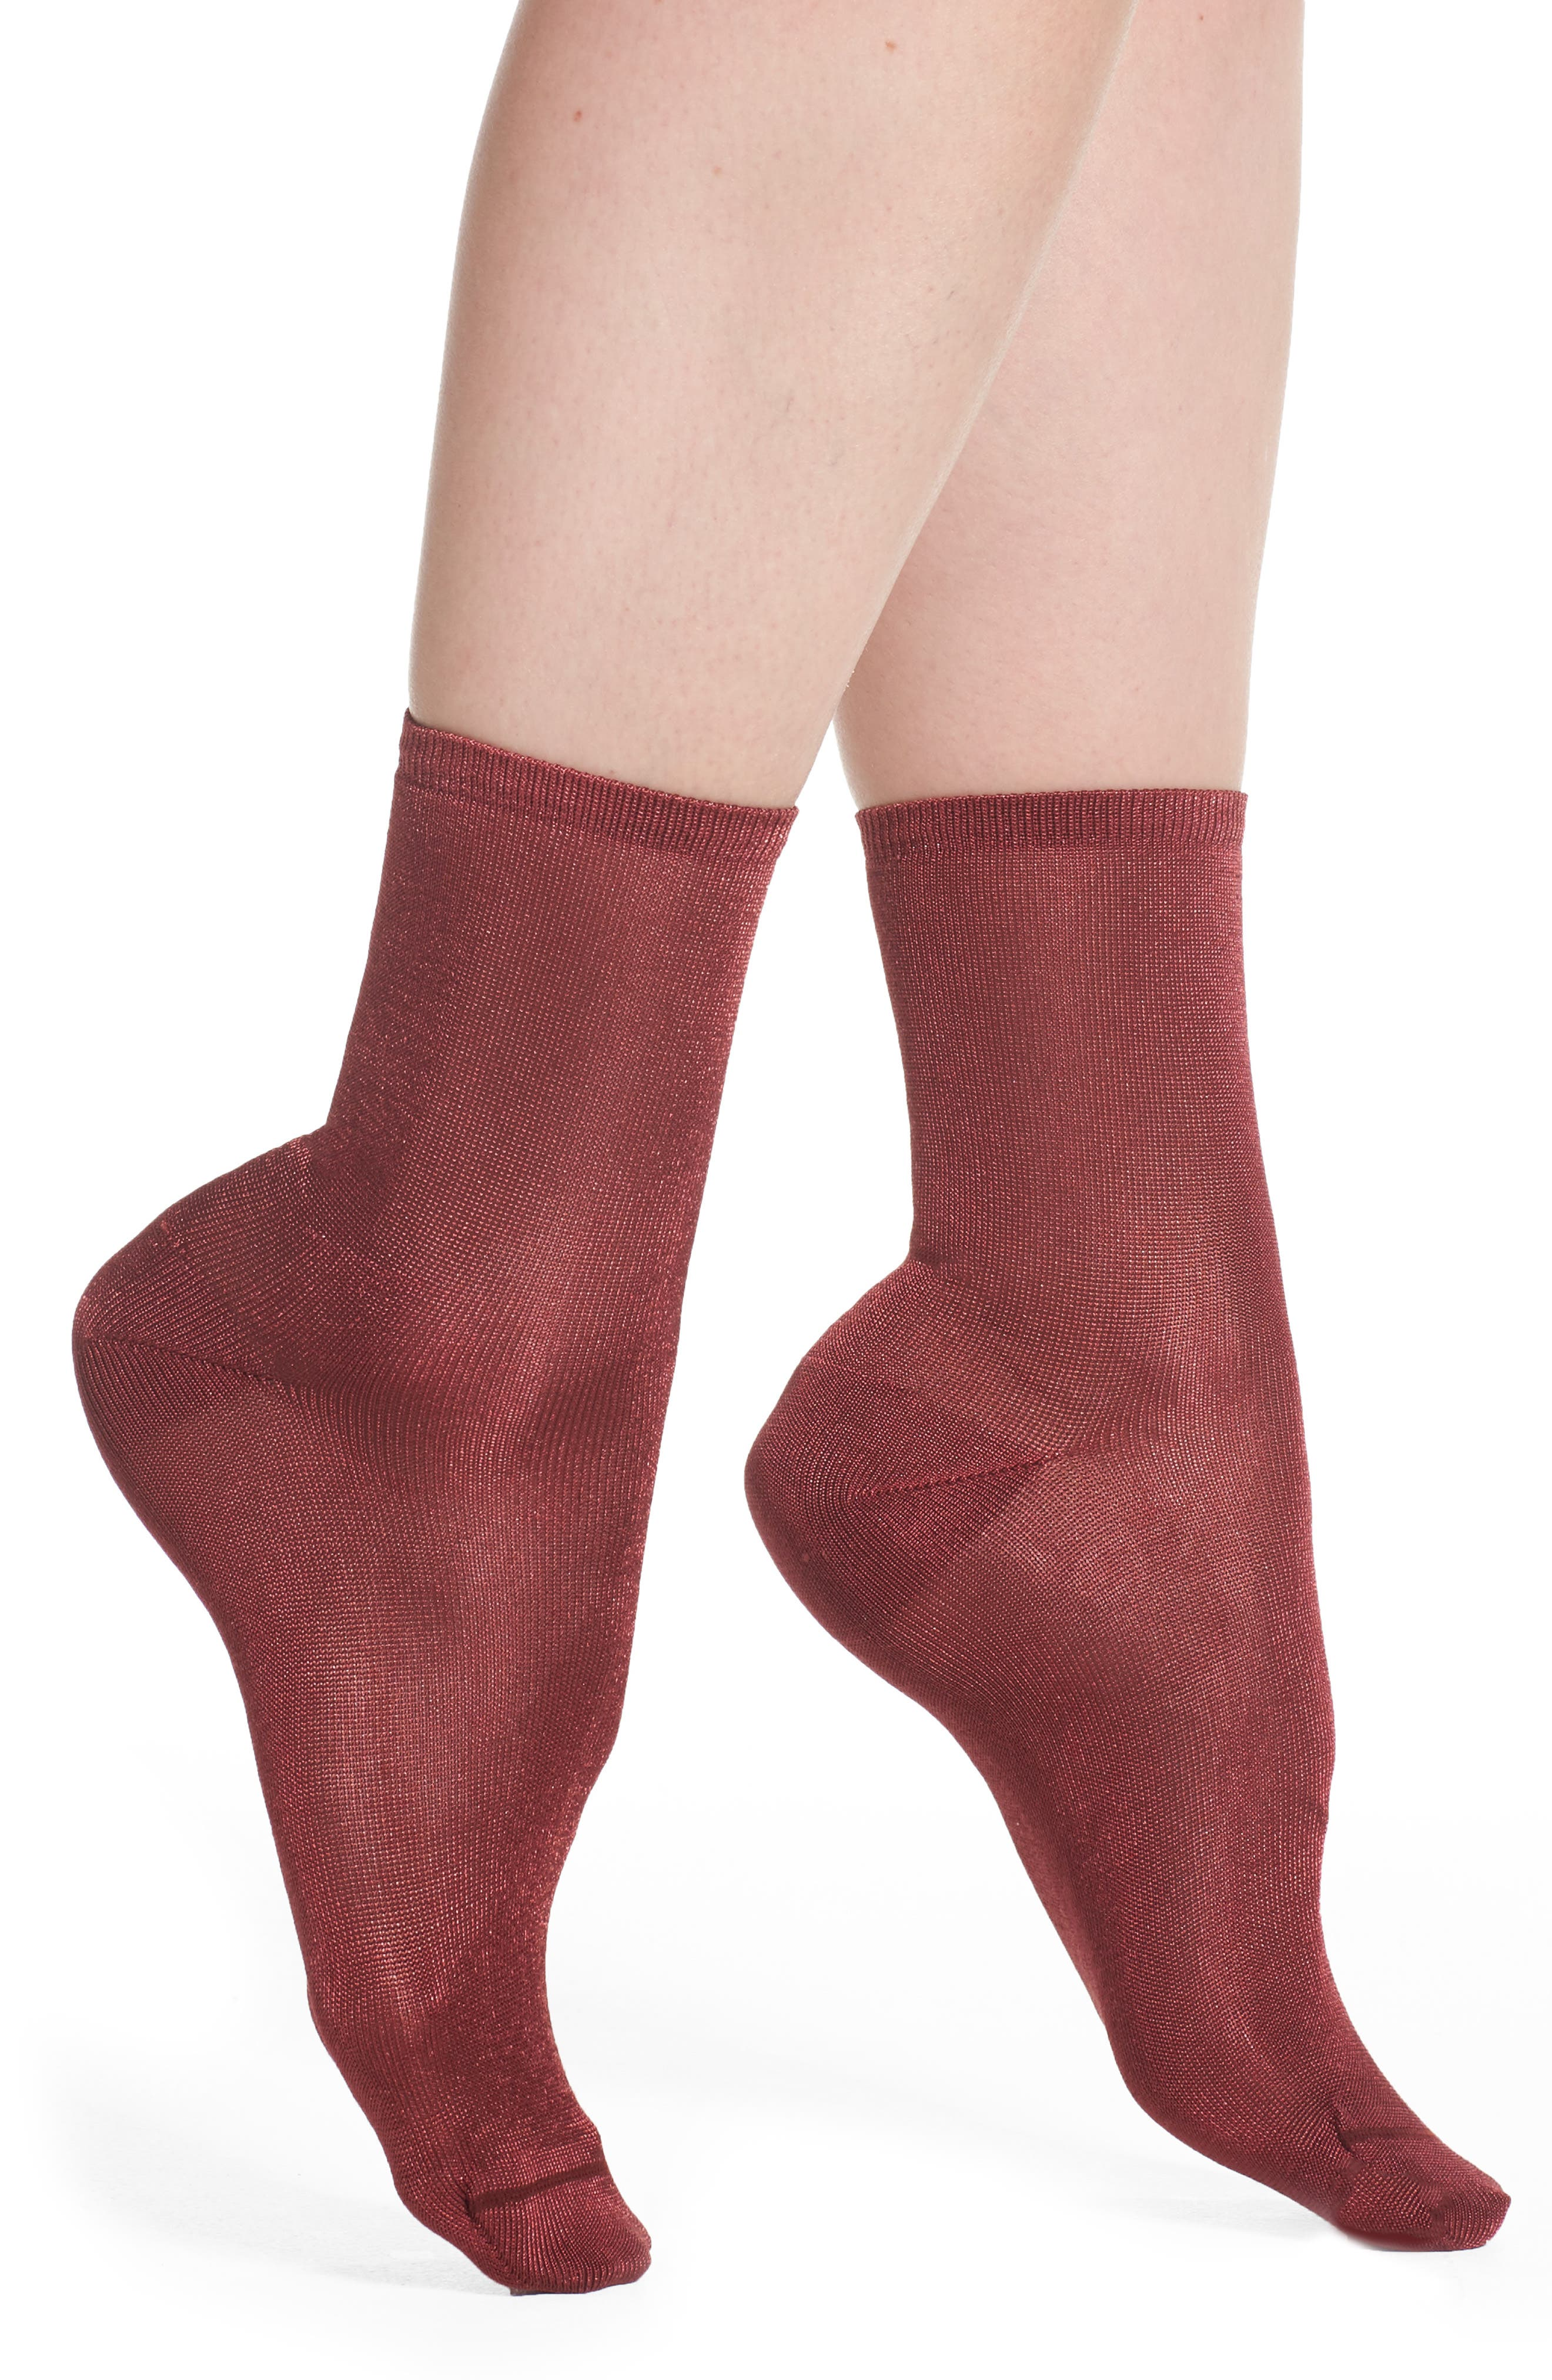 Sweetly Sheer Ankle Socks,                         Main,                         color, Red Cordovan